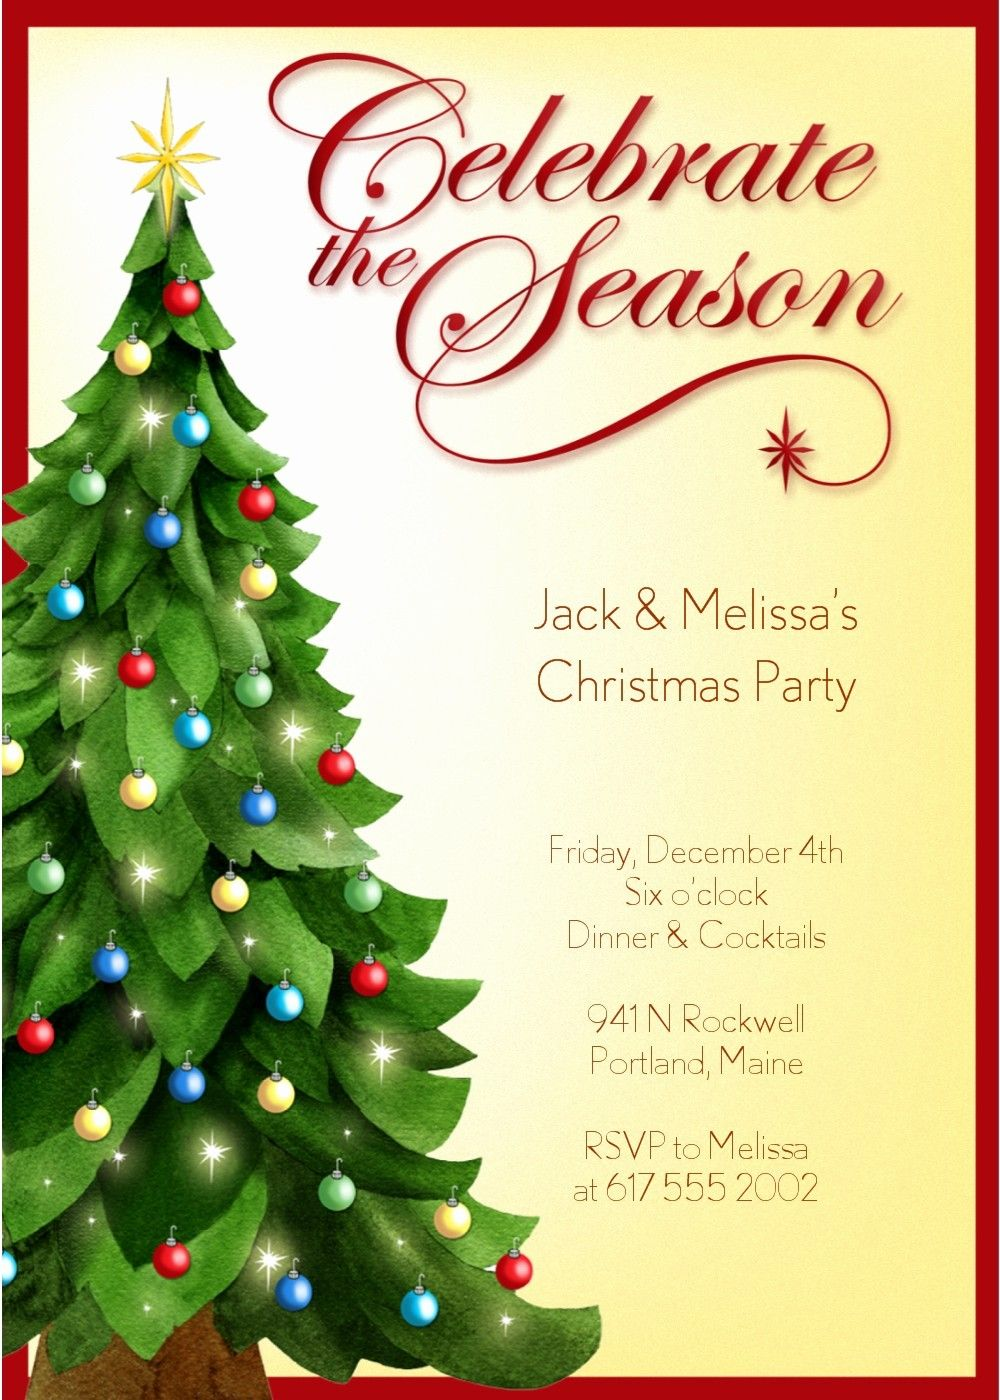 Christmas Party Invitation Templates Free Word Christmas Invitations Template Free Christmas Invitation Templates Christmas Party Invitation Template